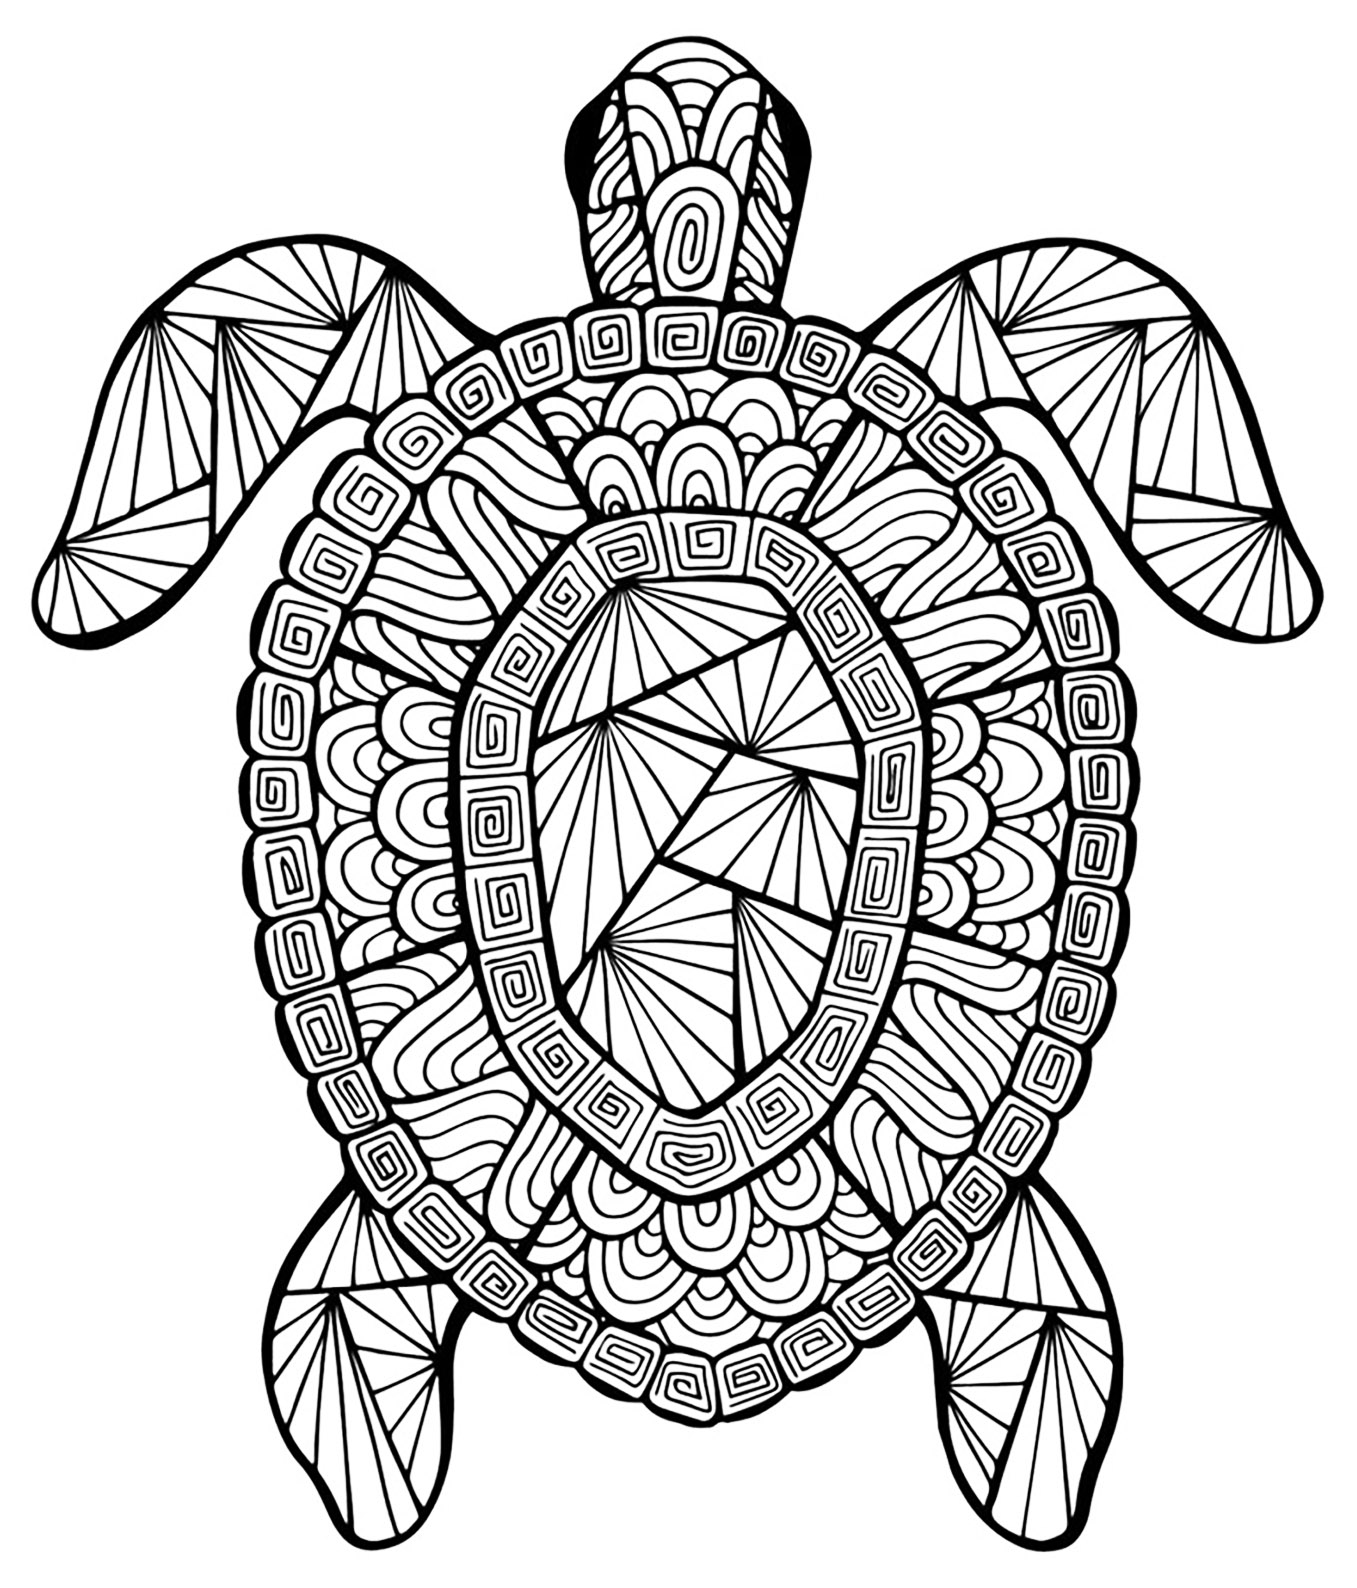 animal coloring page cute jungle animals coloring page page coloring animal